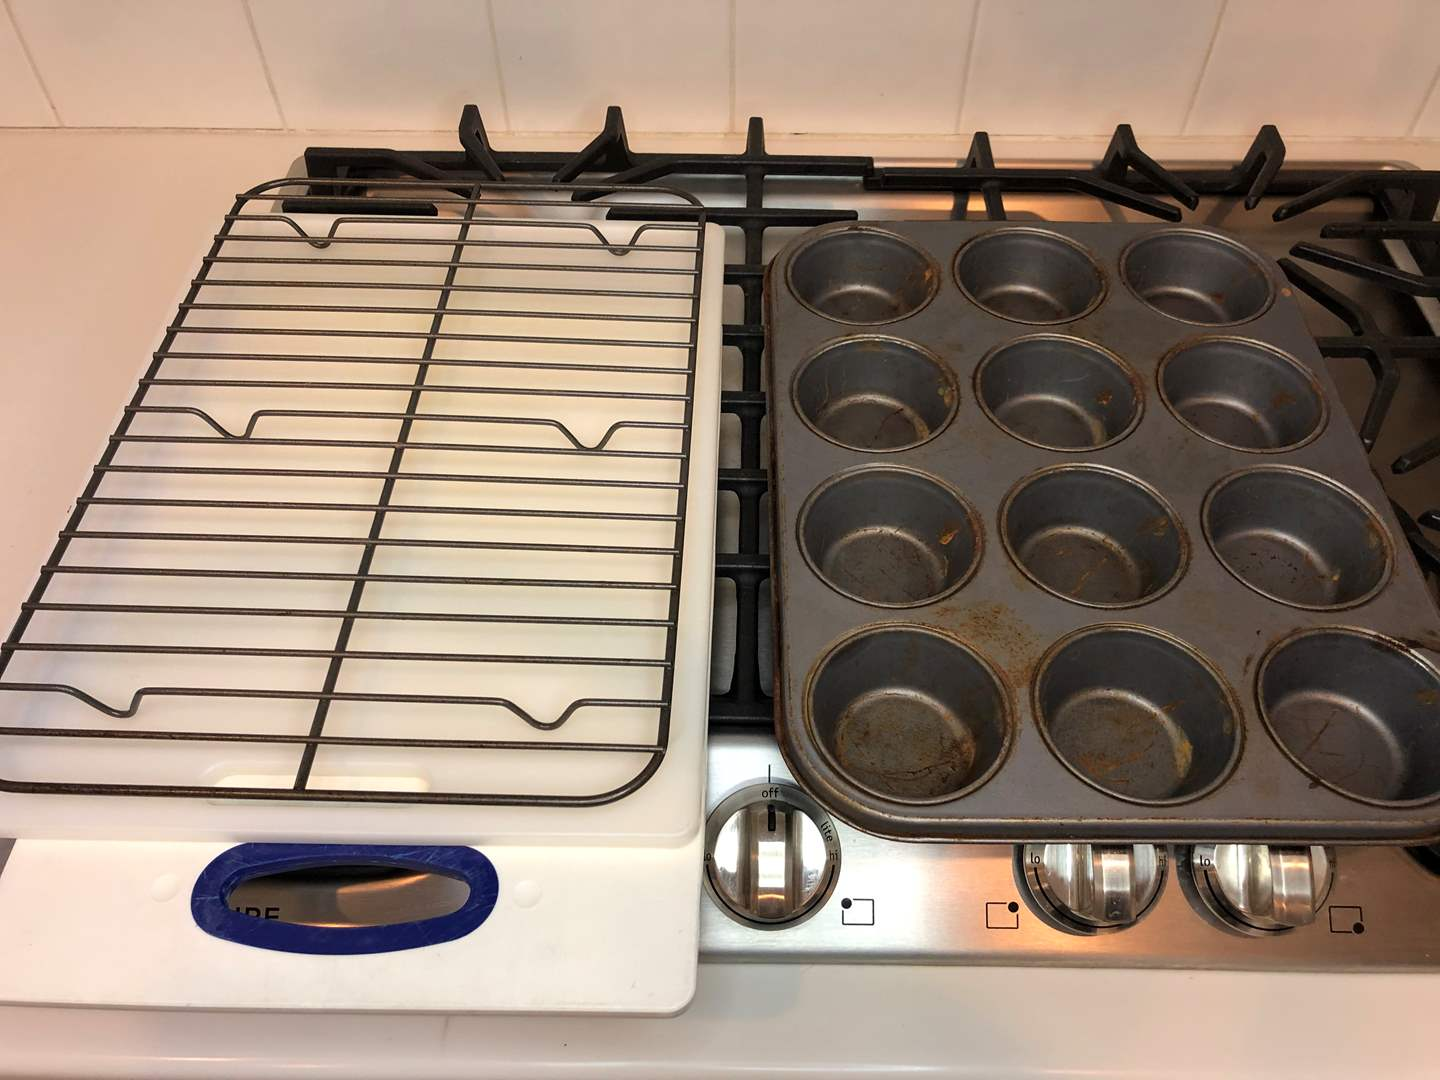 Lot # 32 - Kitchen Items - Baking Pans, Muffin Pan, Cutting Boards and More  (main image)